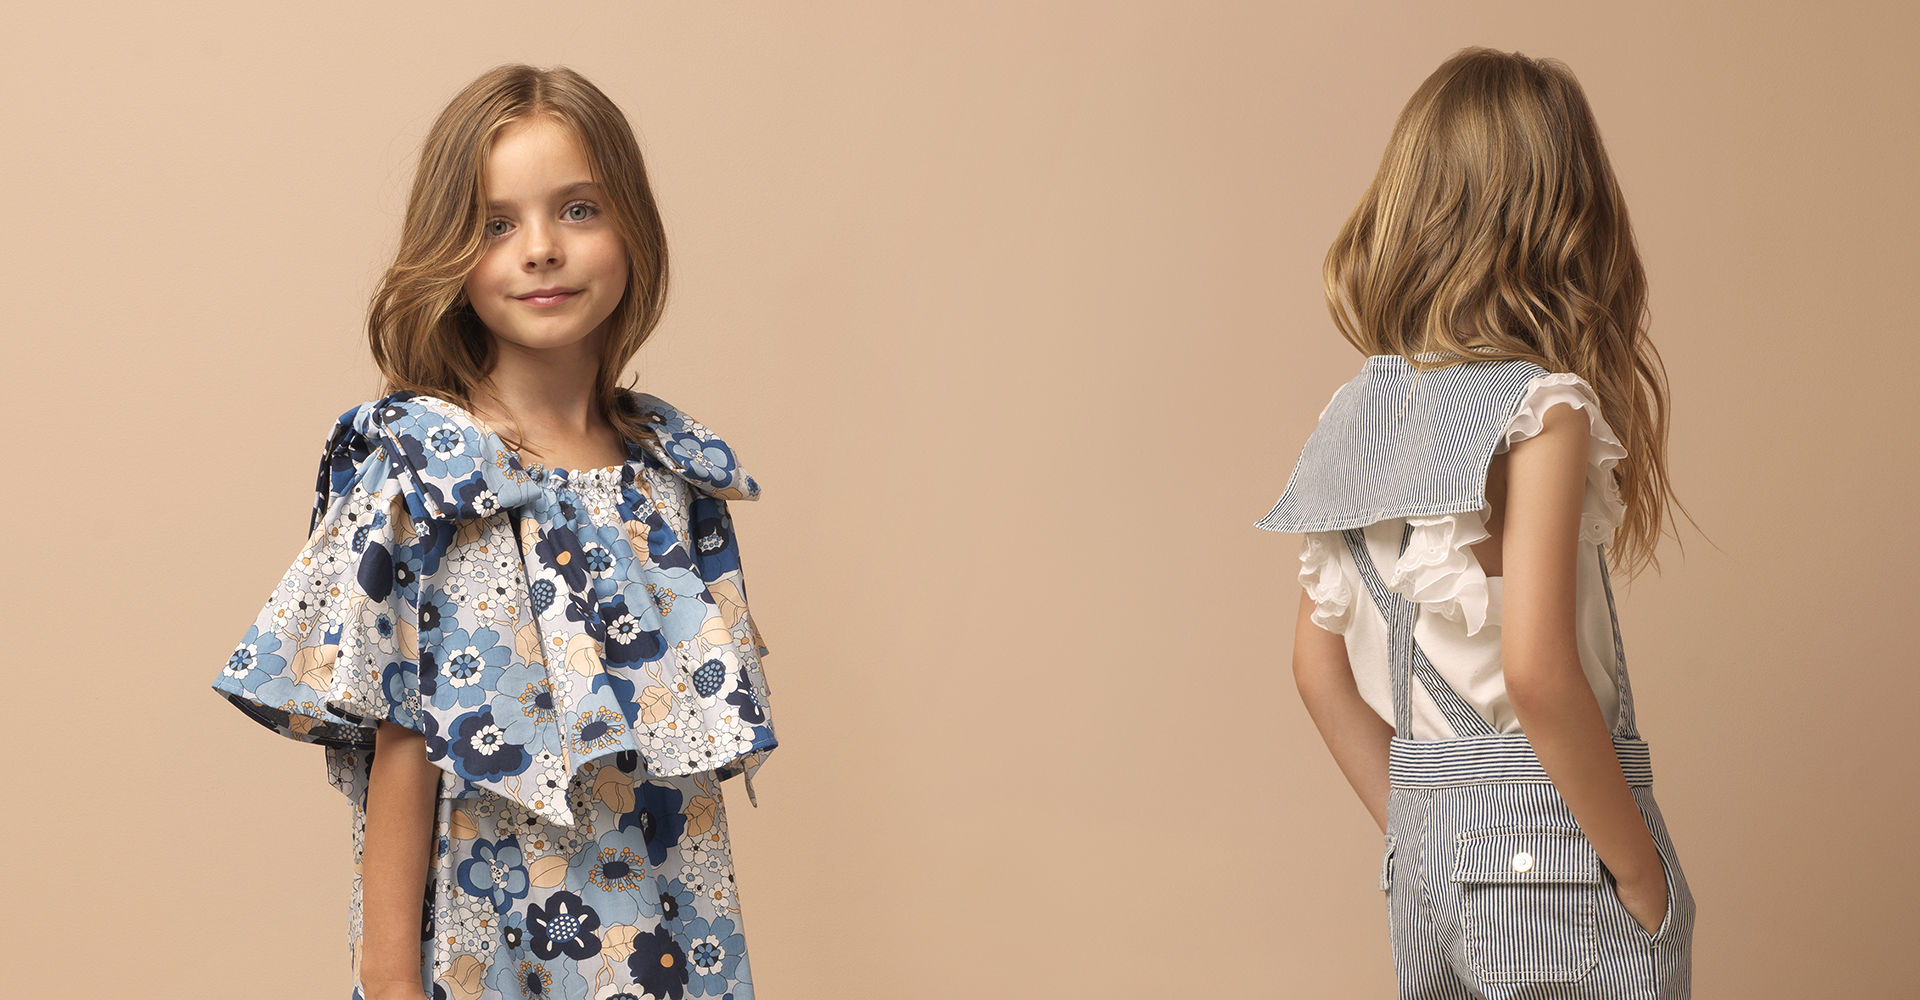 SR_Childrenswear_Breezy summer silhouettes for little #chloeGIRLS